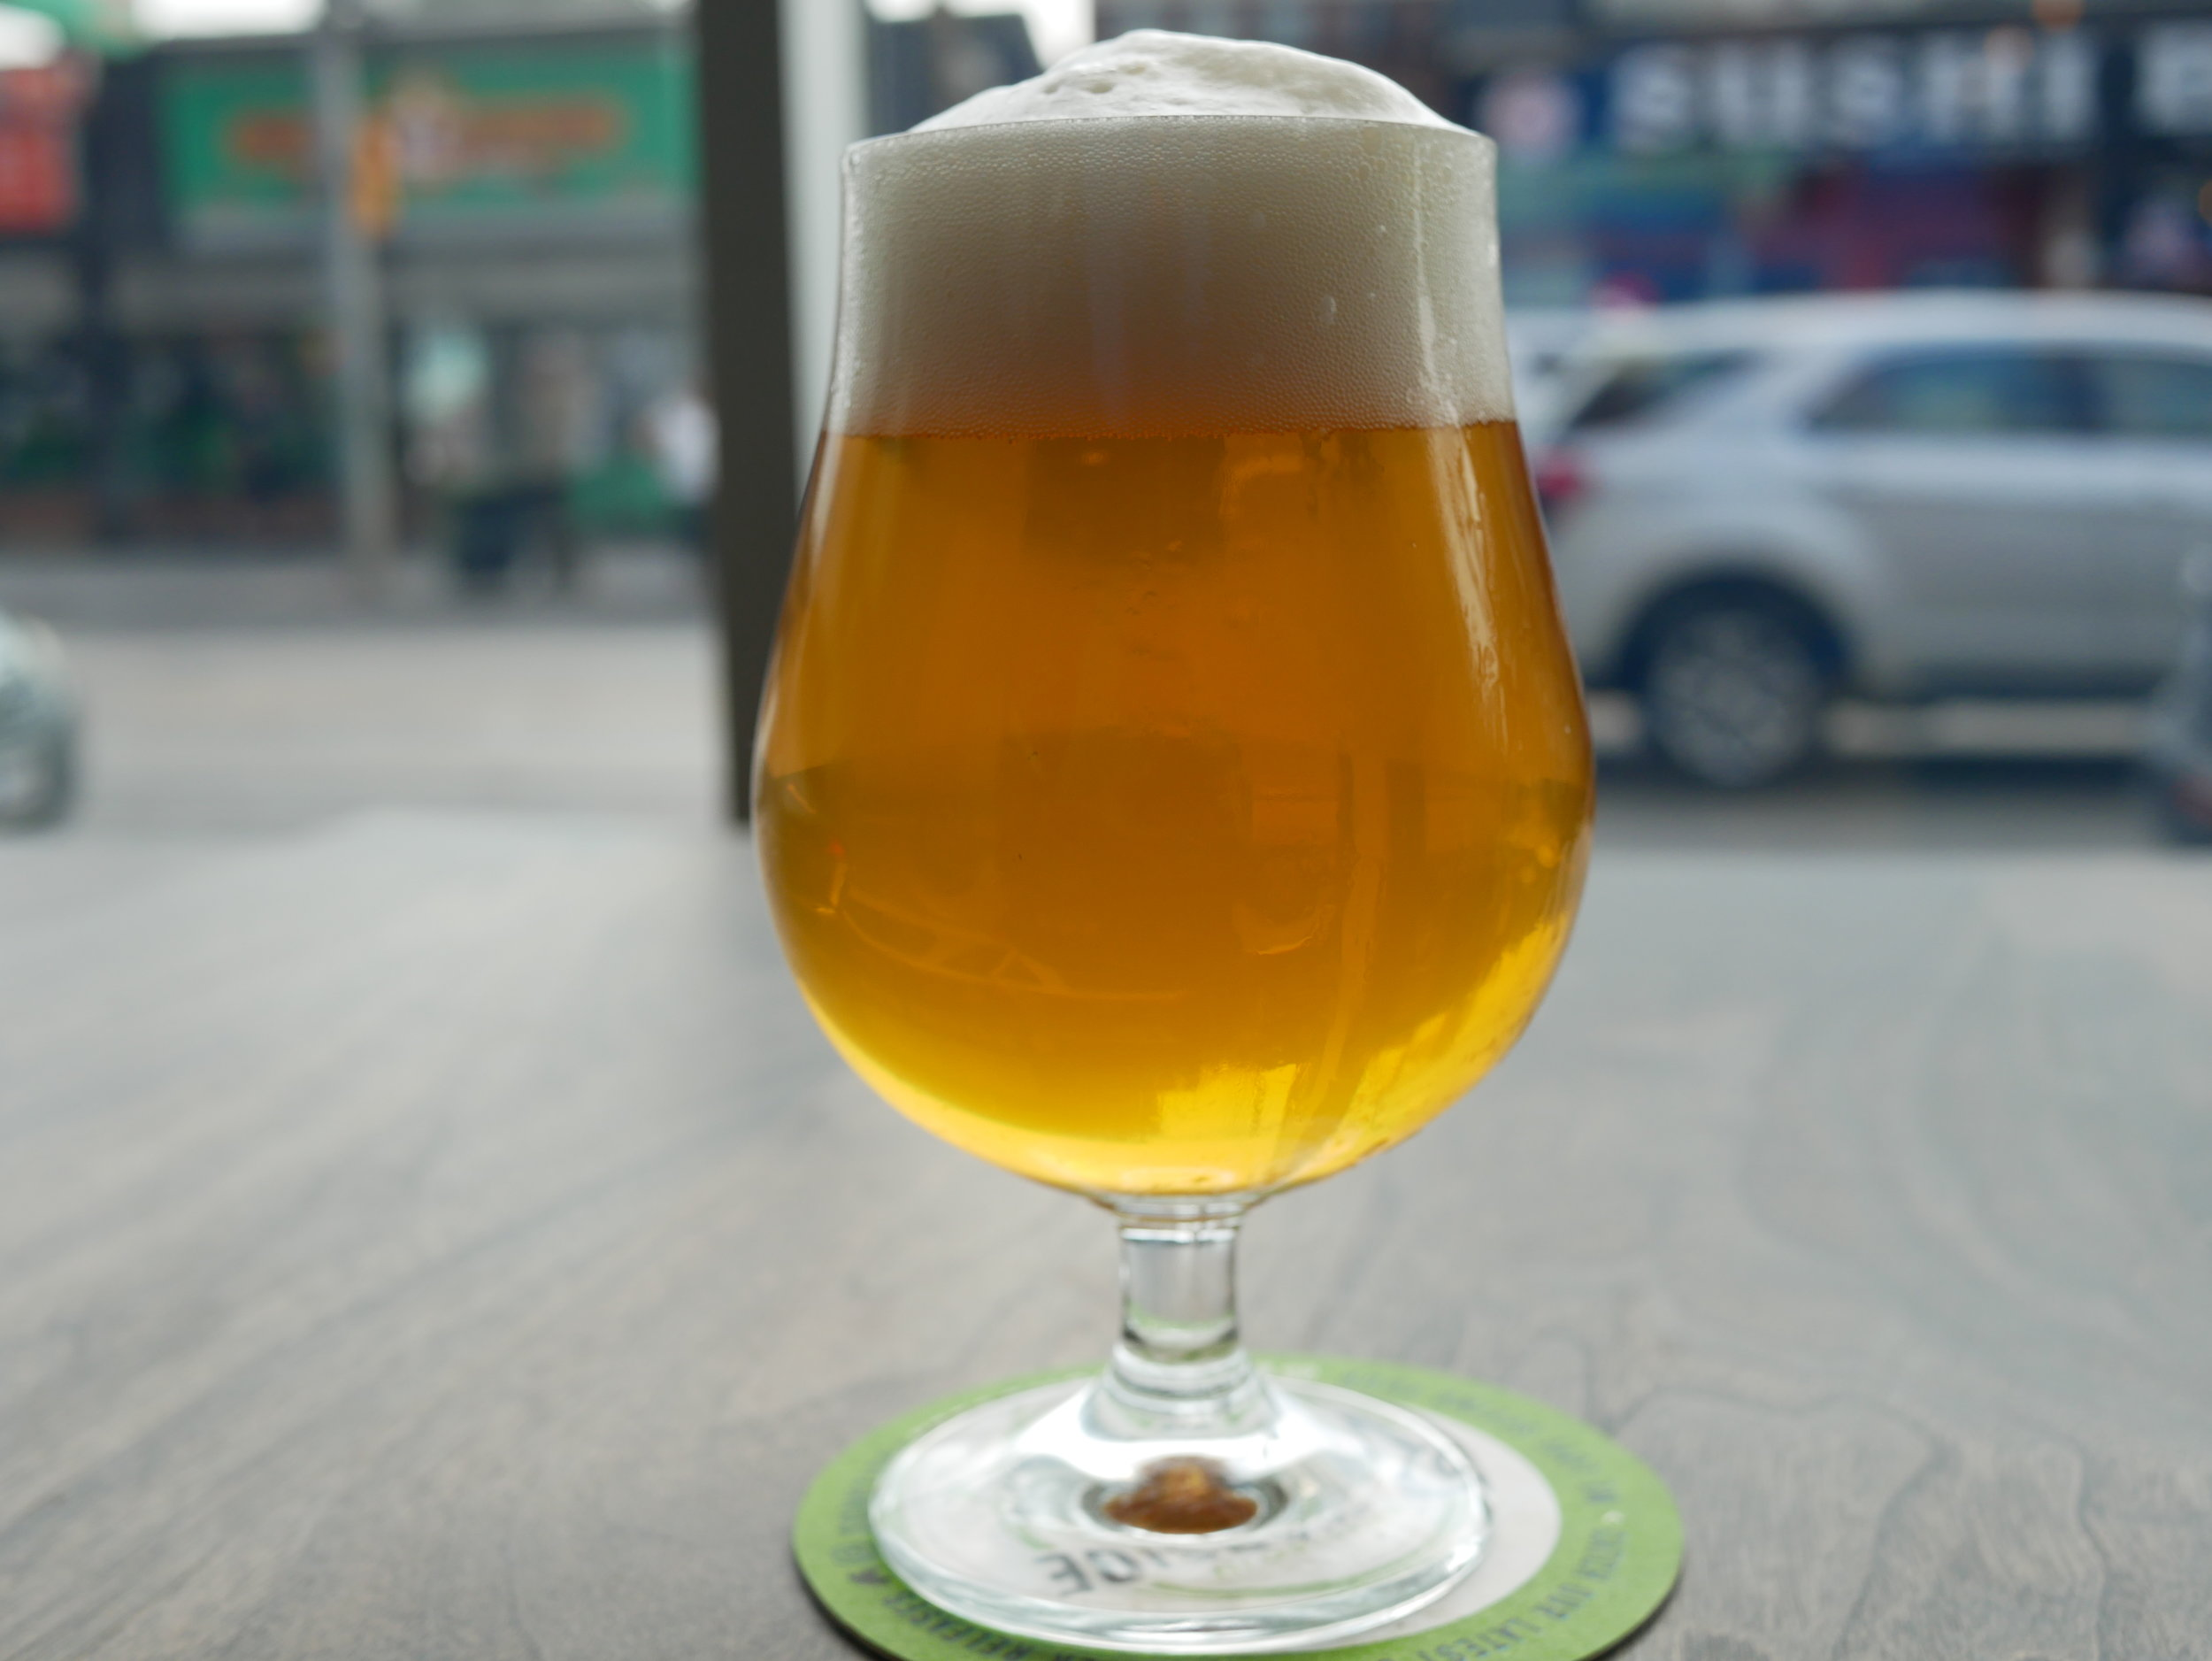 Copy of Basecamp Saison glass of beer